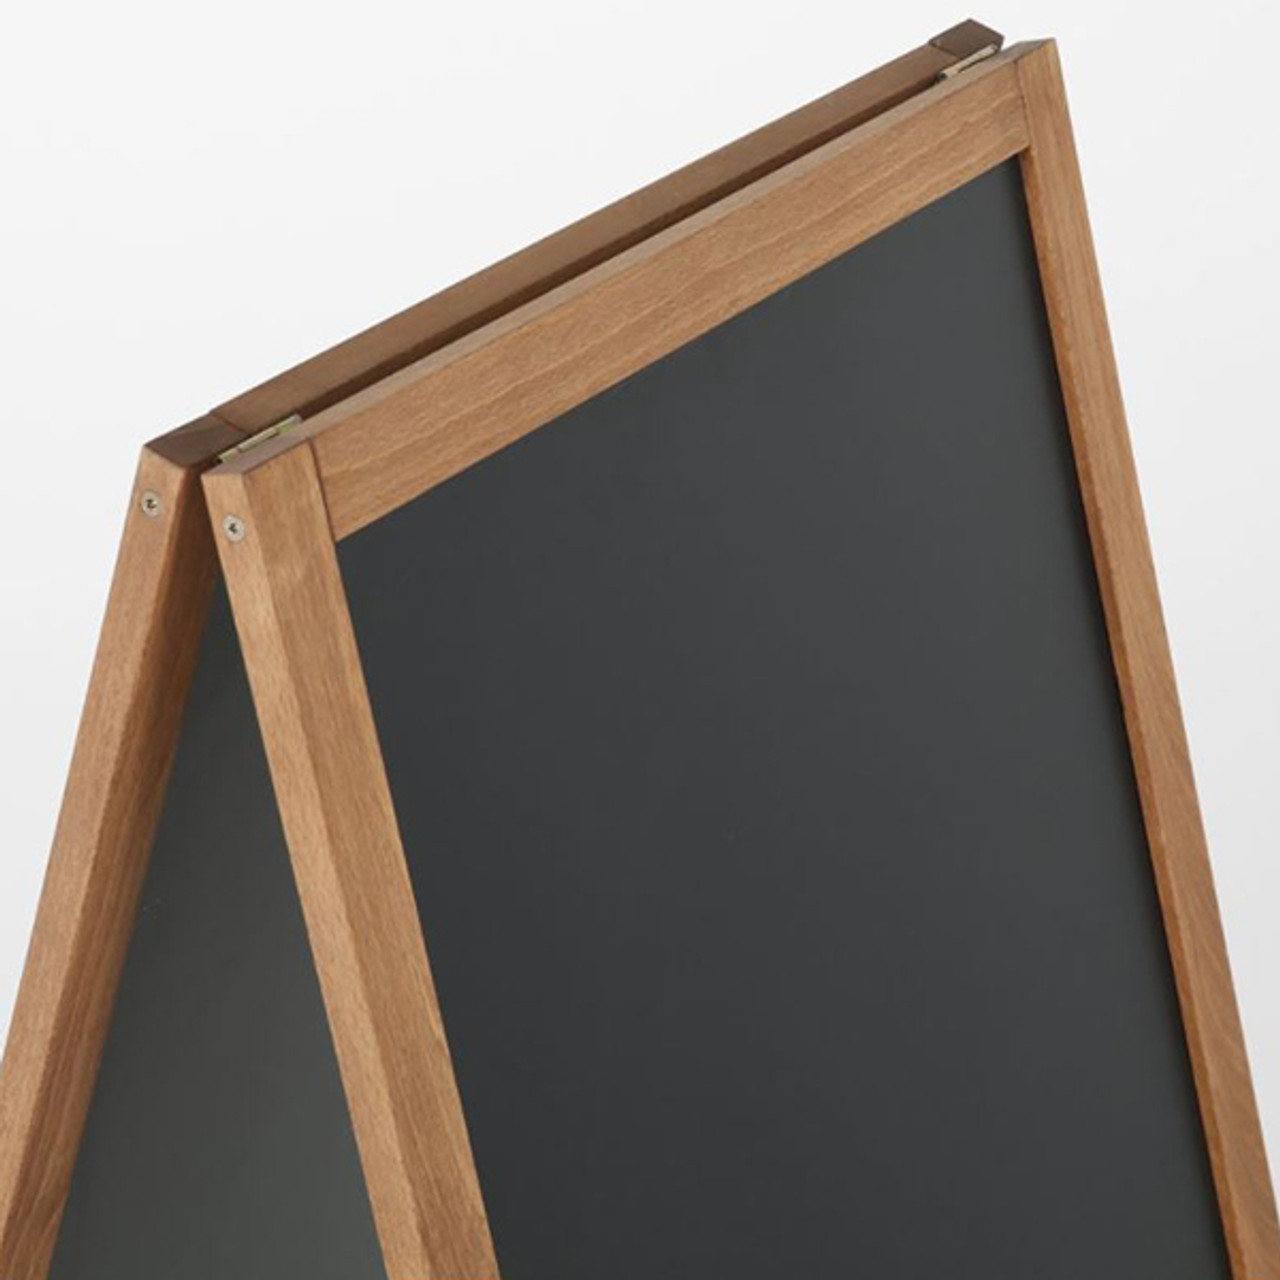 "A-Frame Sidewalk Sign - Dark Beech Wood- 18""w x 26""h -Double Sided - Magnetic Chalkboard  - Indoor or Outdoor"